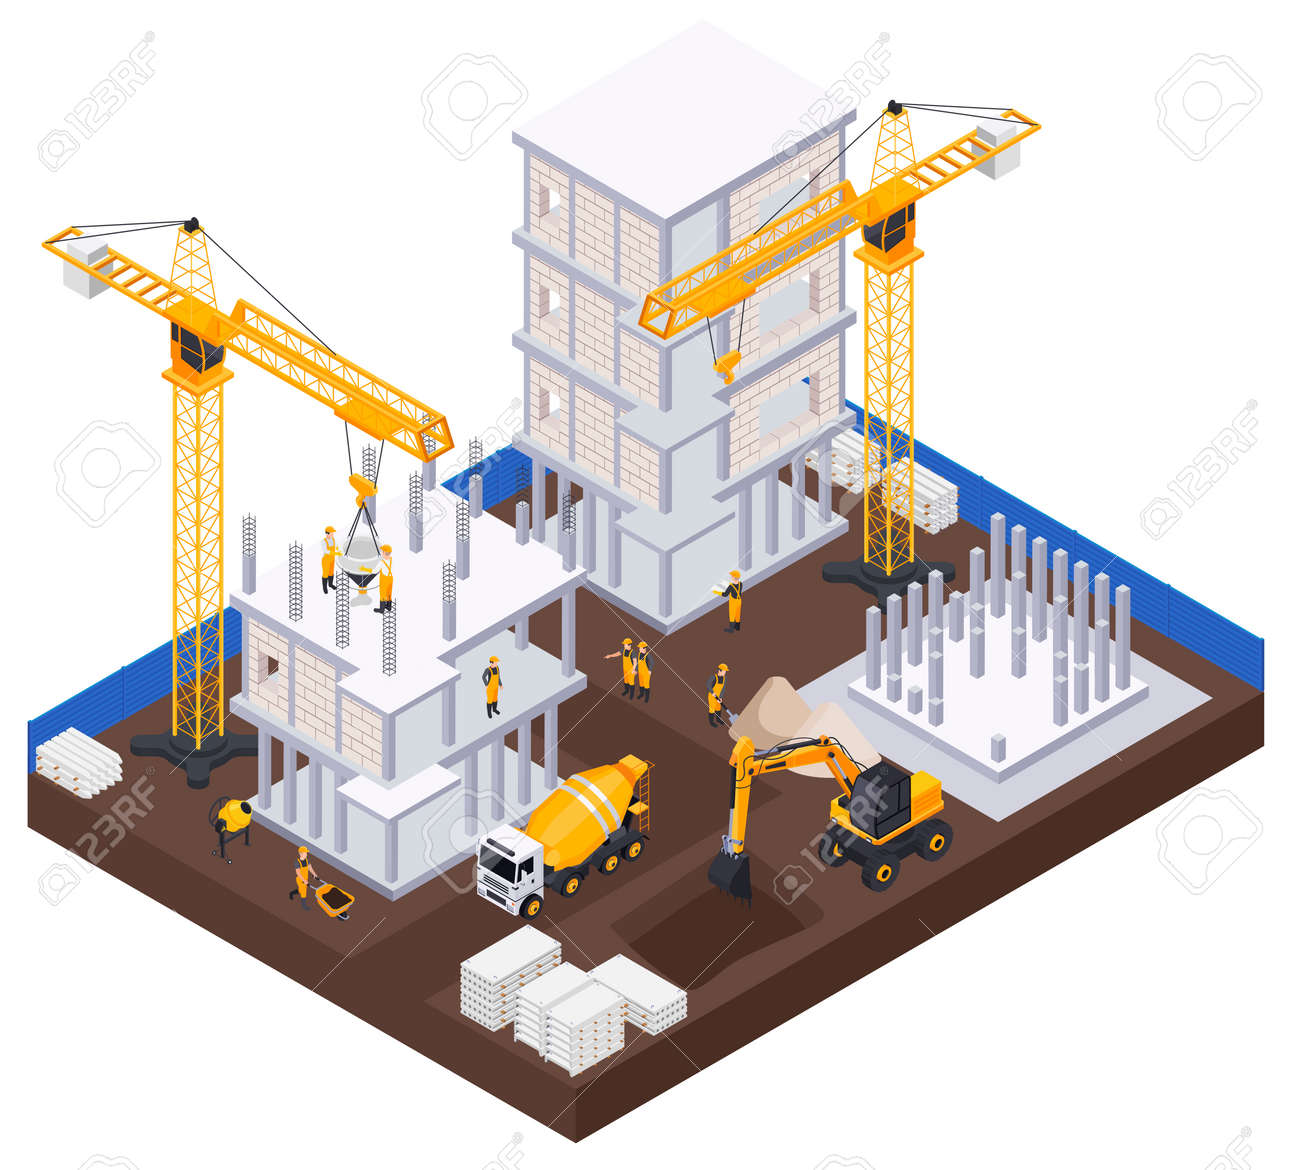 Construction Industry Isometric Concept - 171636213